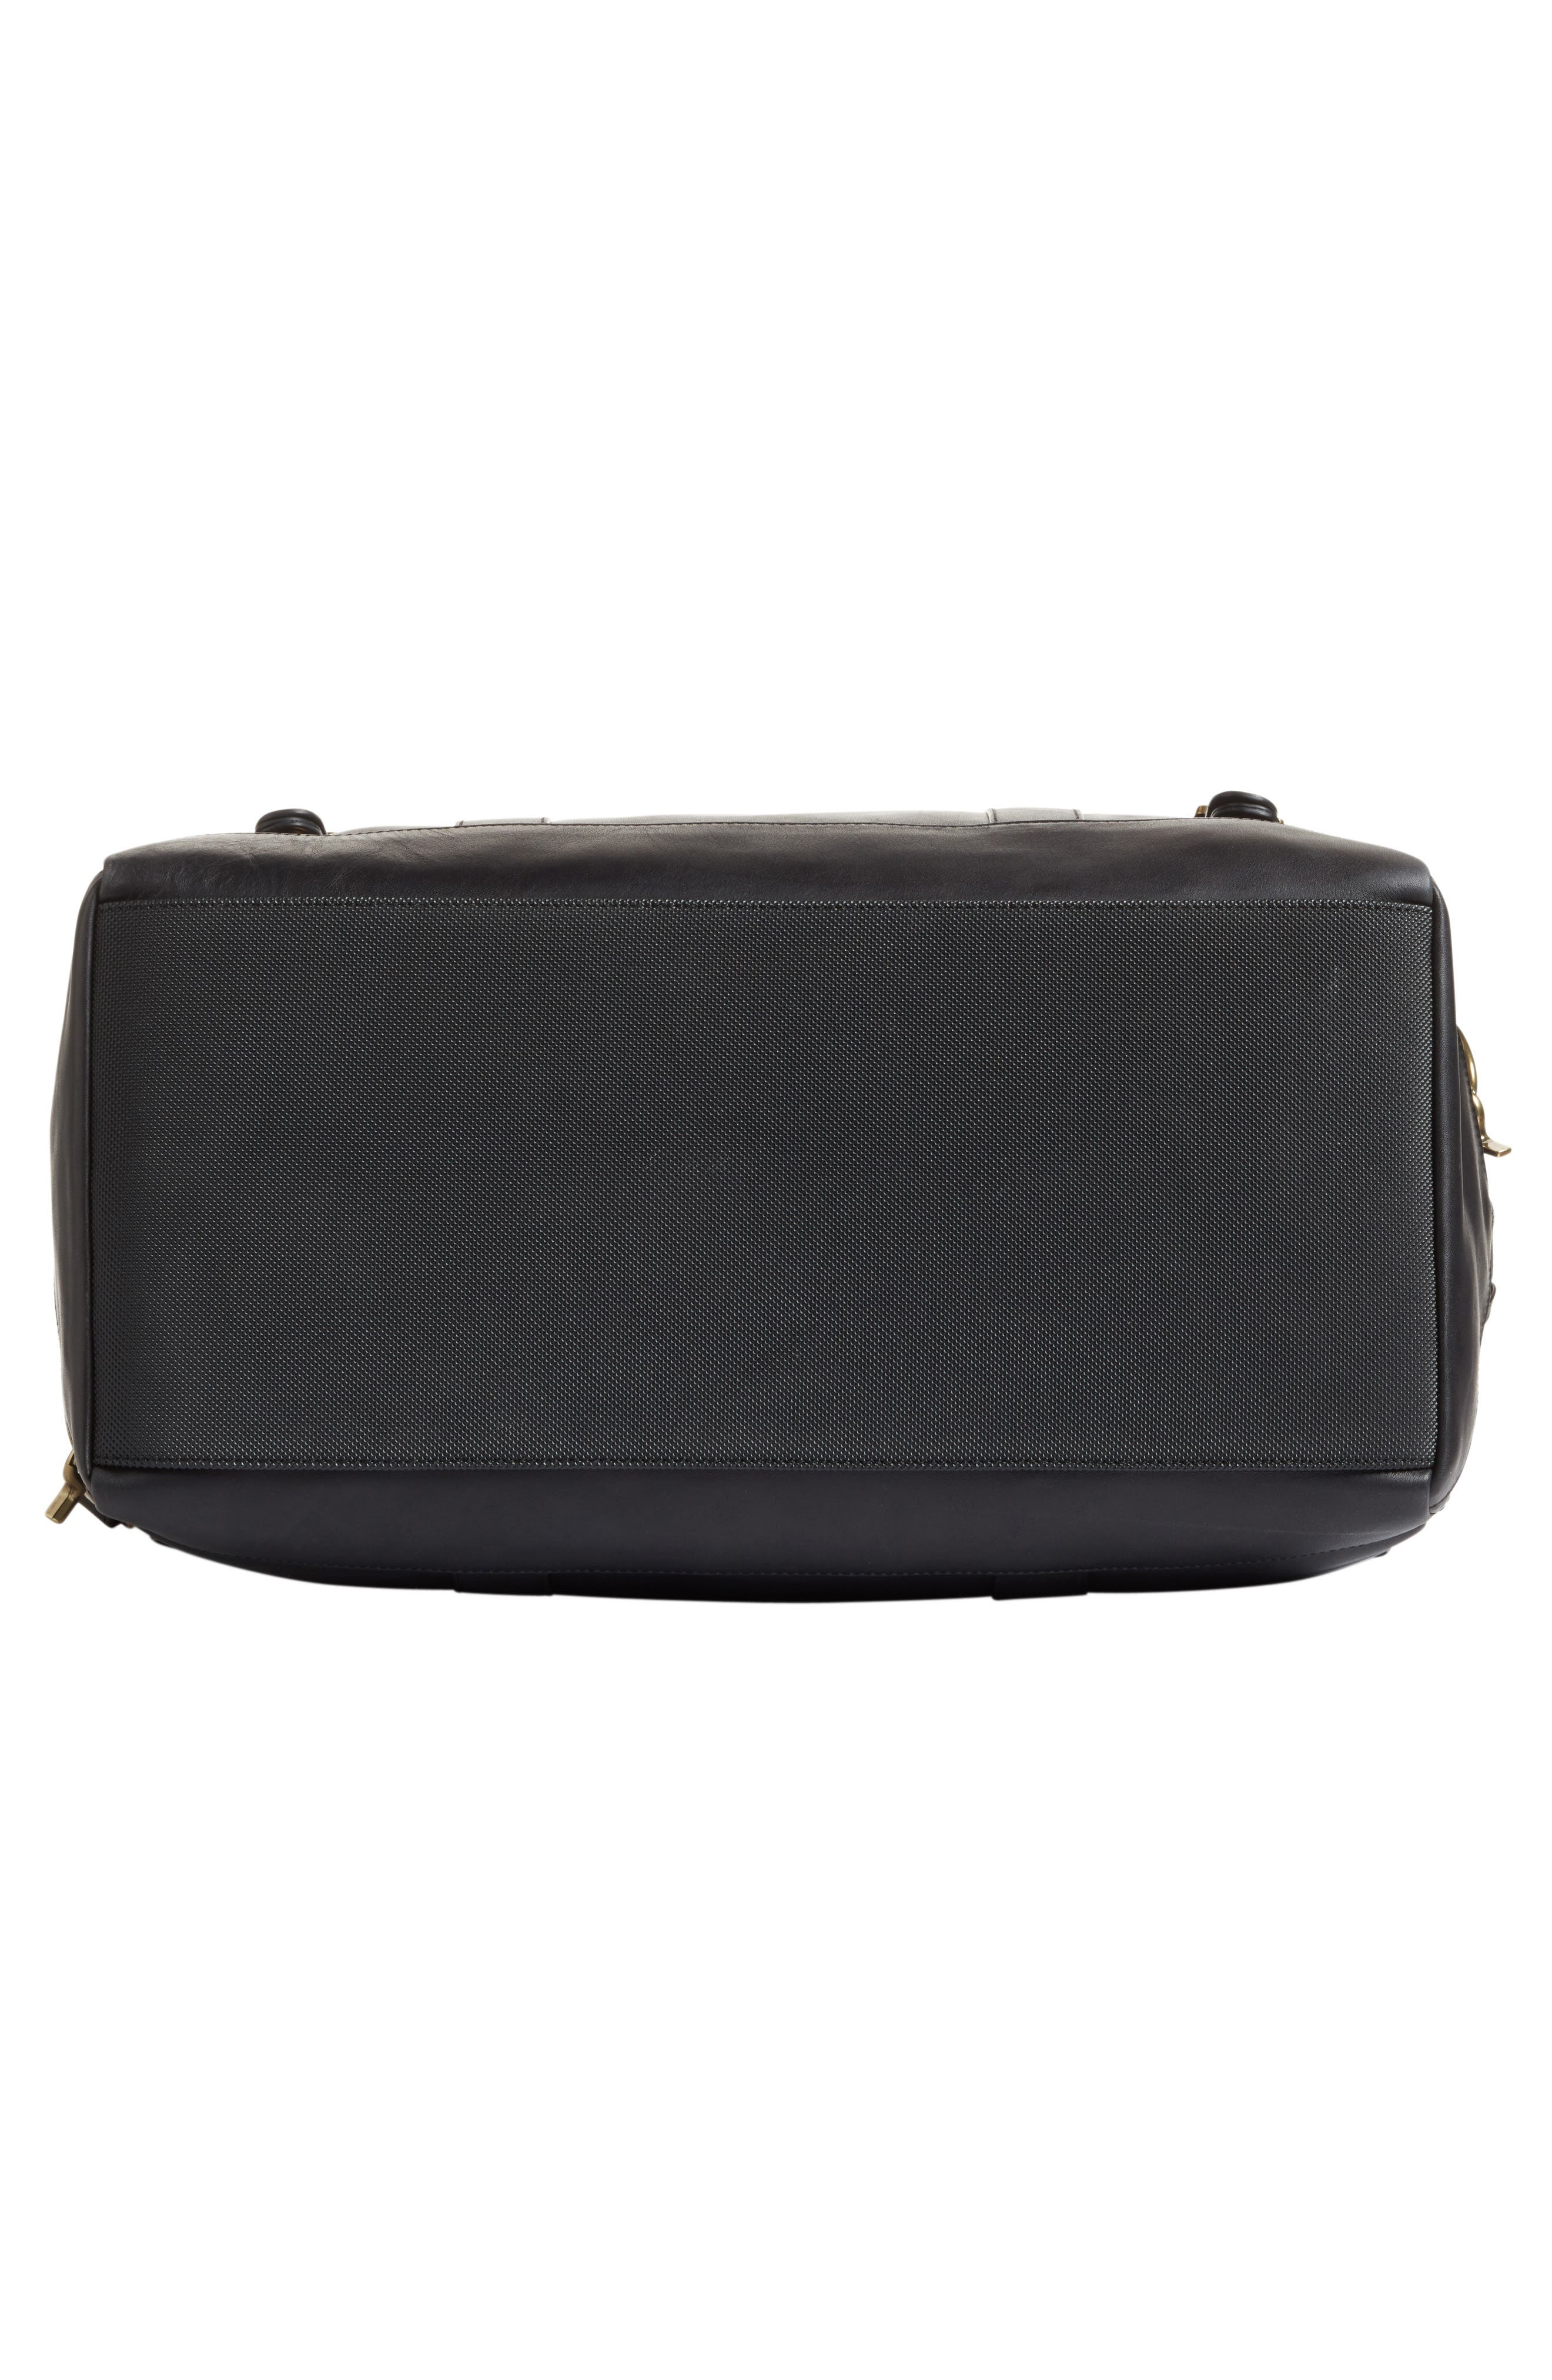 Leather Duffel Bag,                             Alternate thumbnail 11, color,